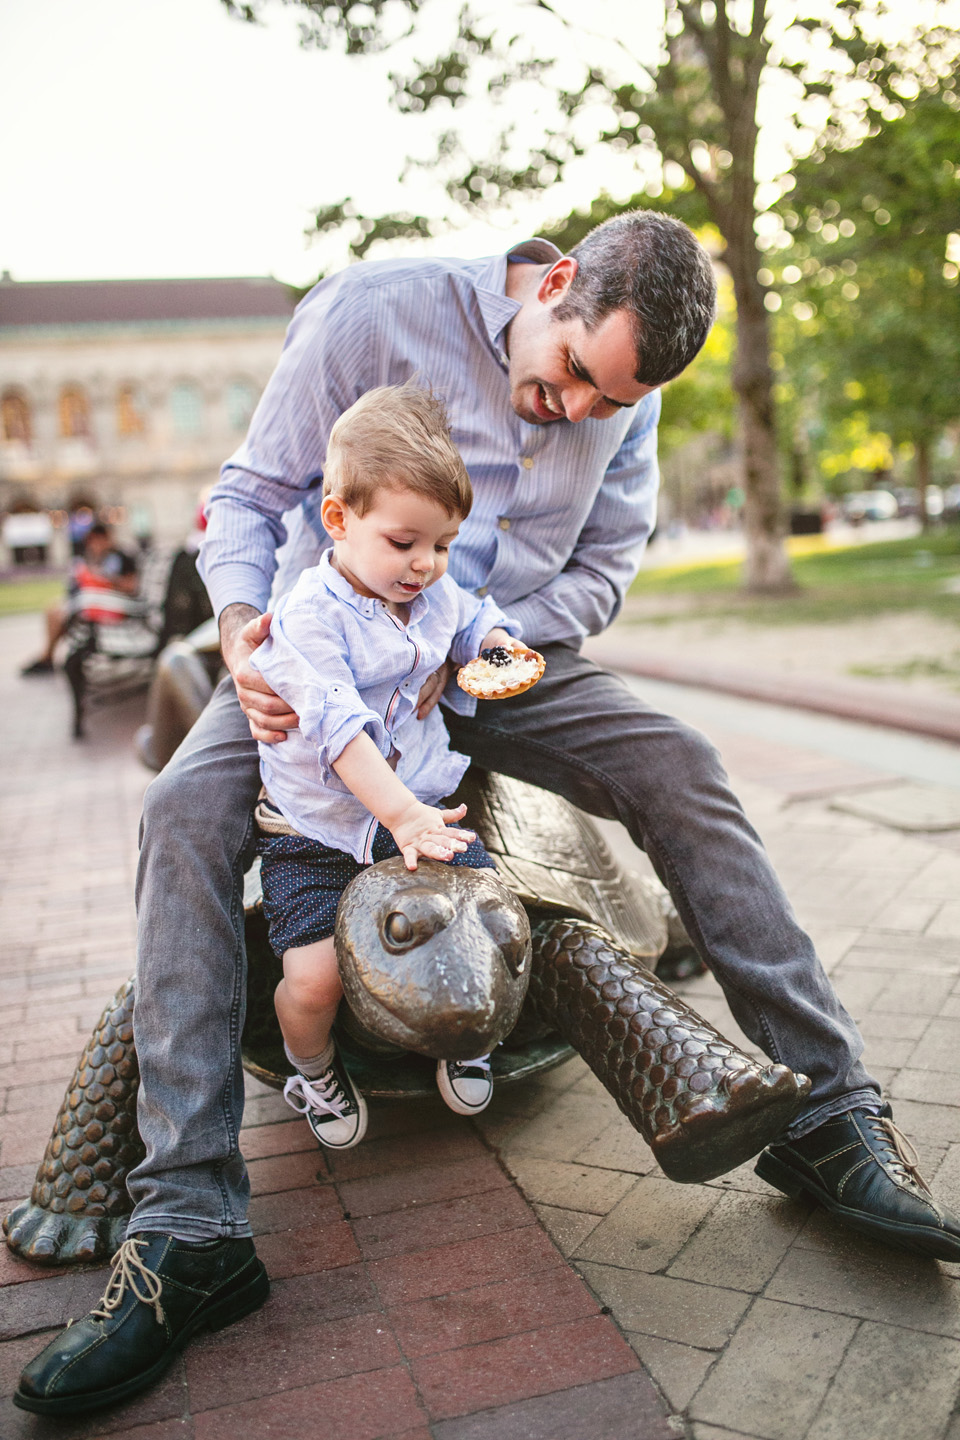 Dad and son play on the turtle in Copley Square.